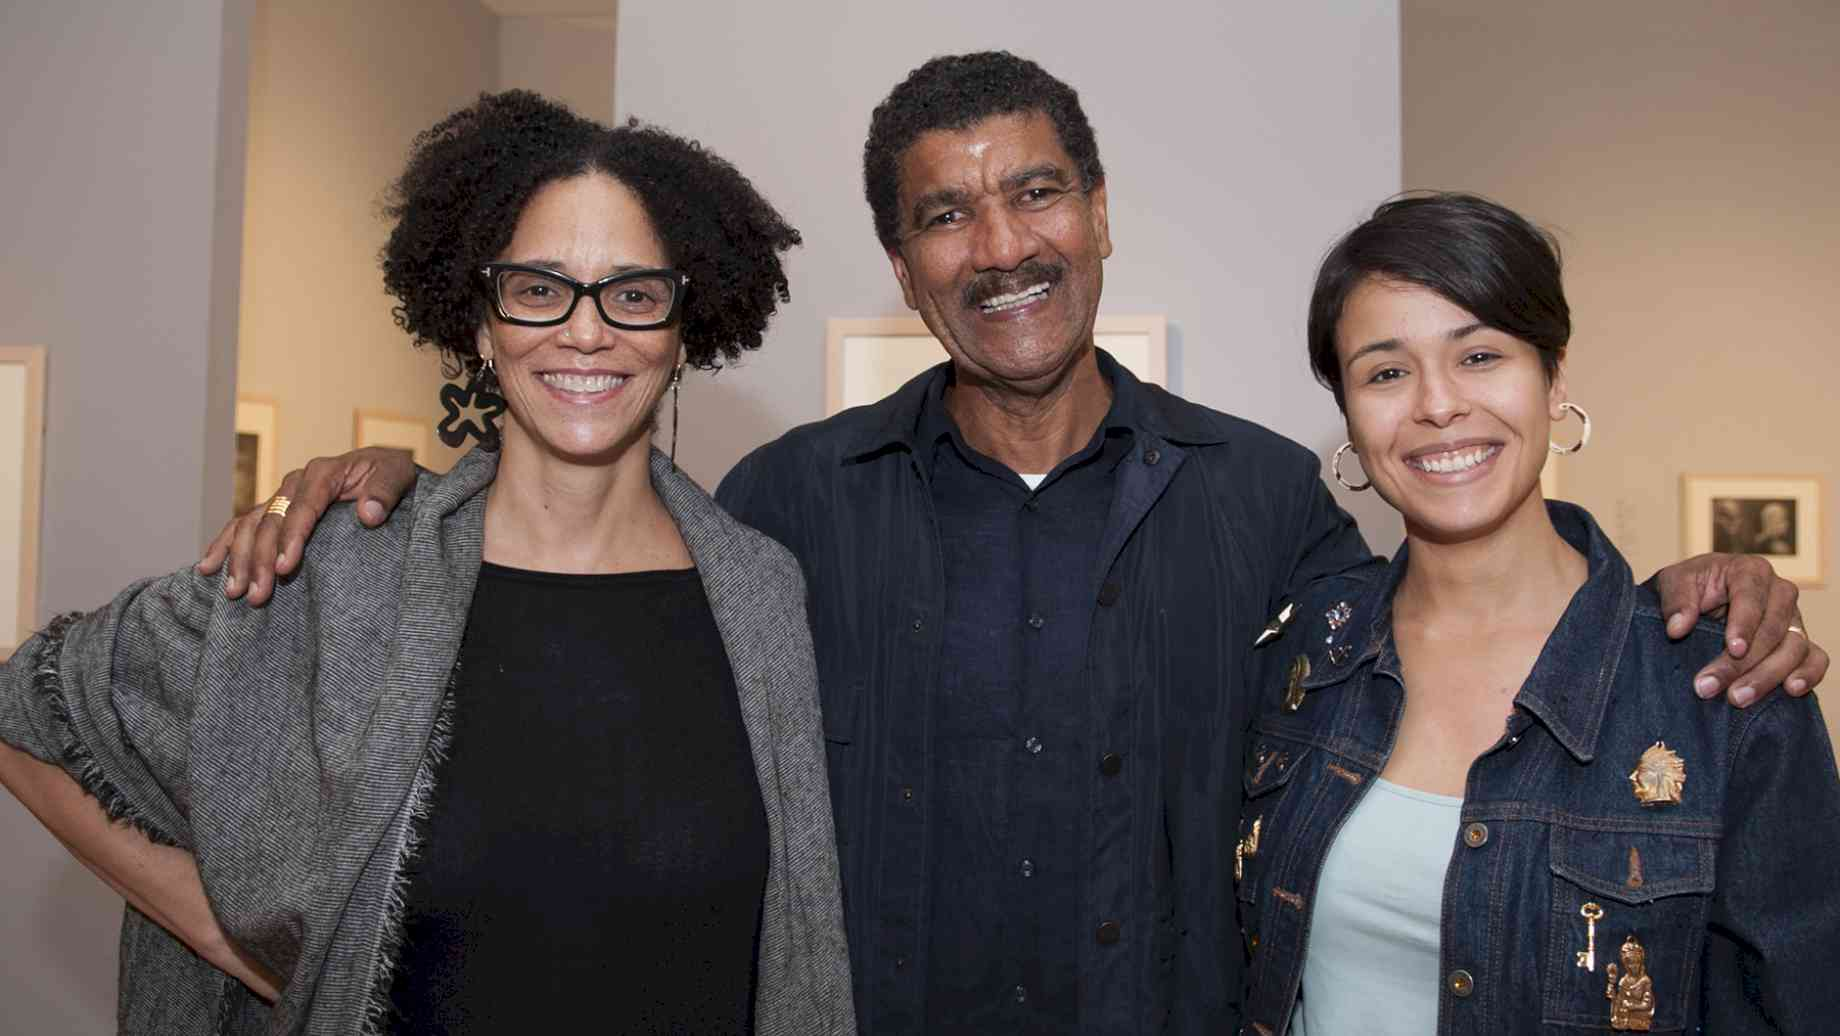 Visiting Artist Pepón Osorio with Professor Coco Fusco (left) and Art + Tech grad student Gia Del Pino (right)